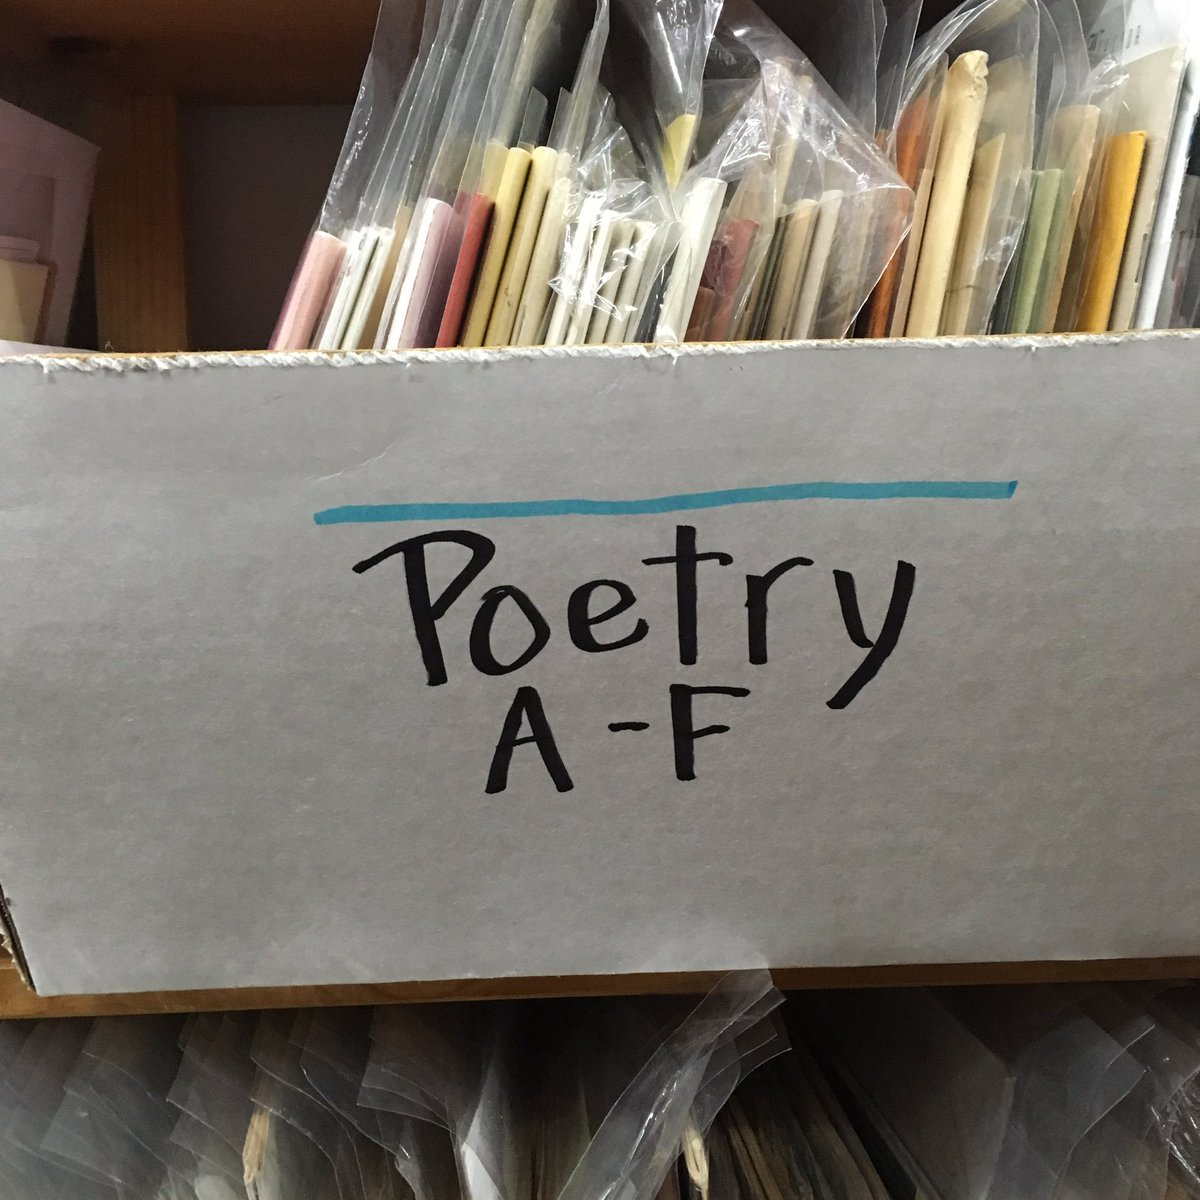 How poetry is it? https://t.co/hTpiFwzmBR